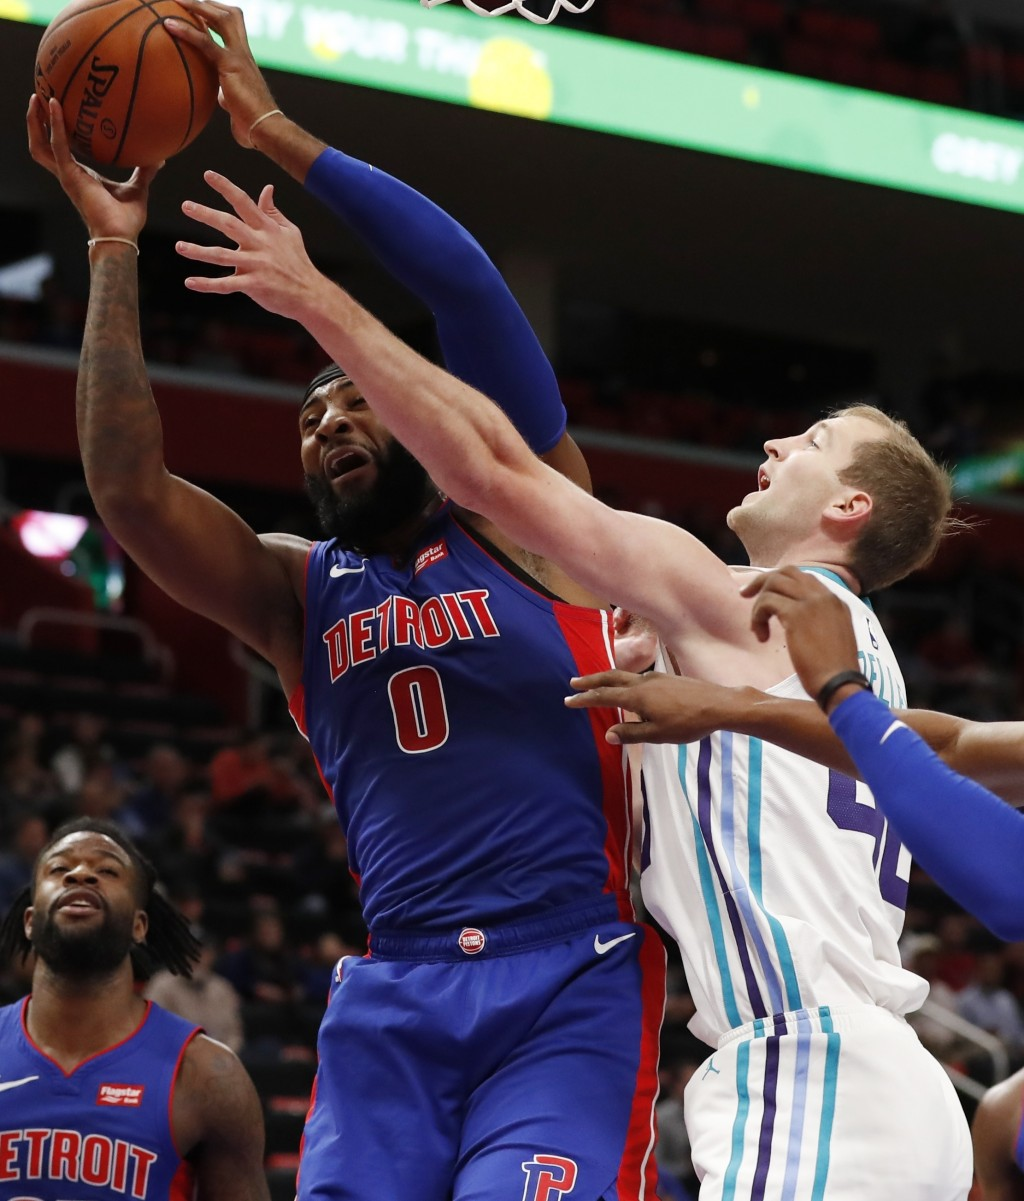 Charlotte Hornets center Cody Zeller (40) reaches in as Detroit Pistons center Andre Drummond (0) pulls down a rebound during the first half of an NBA